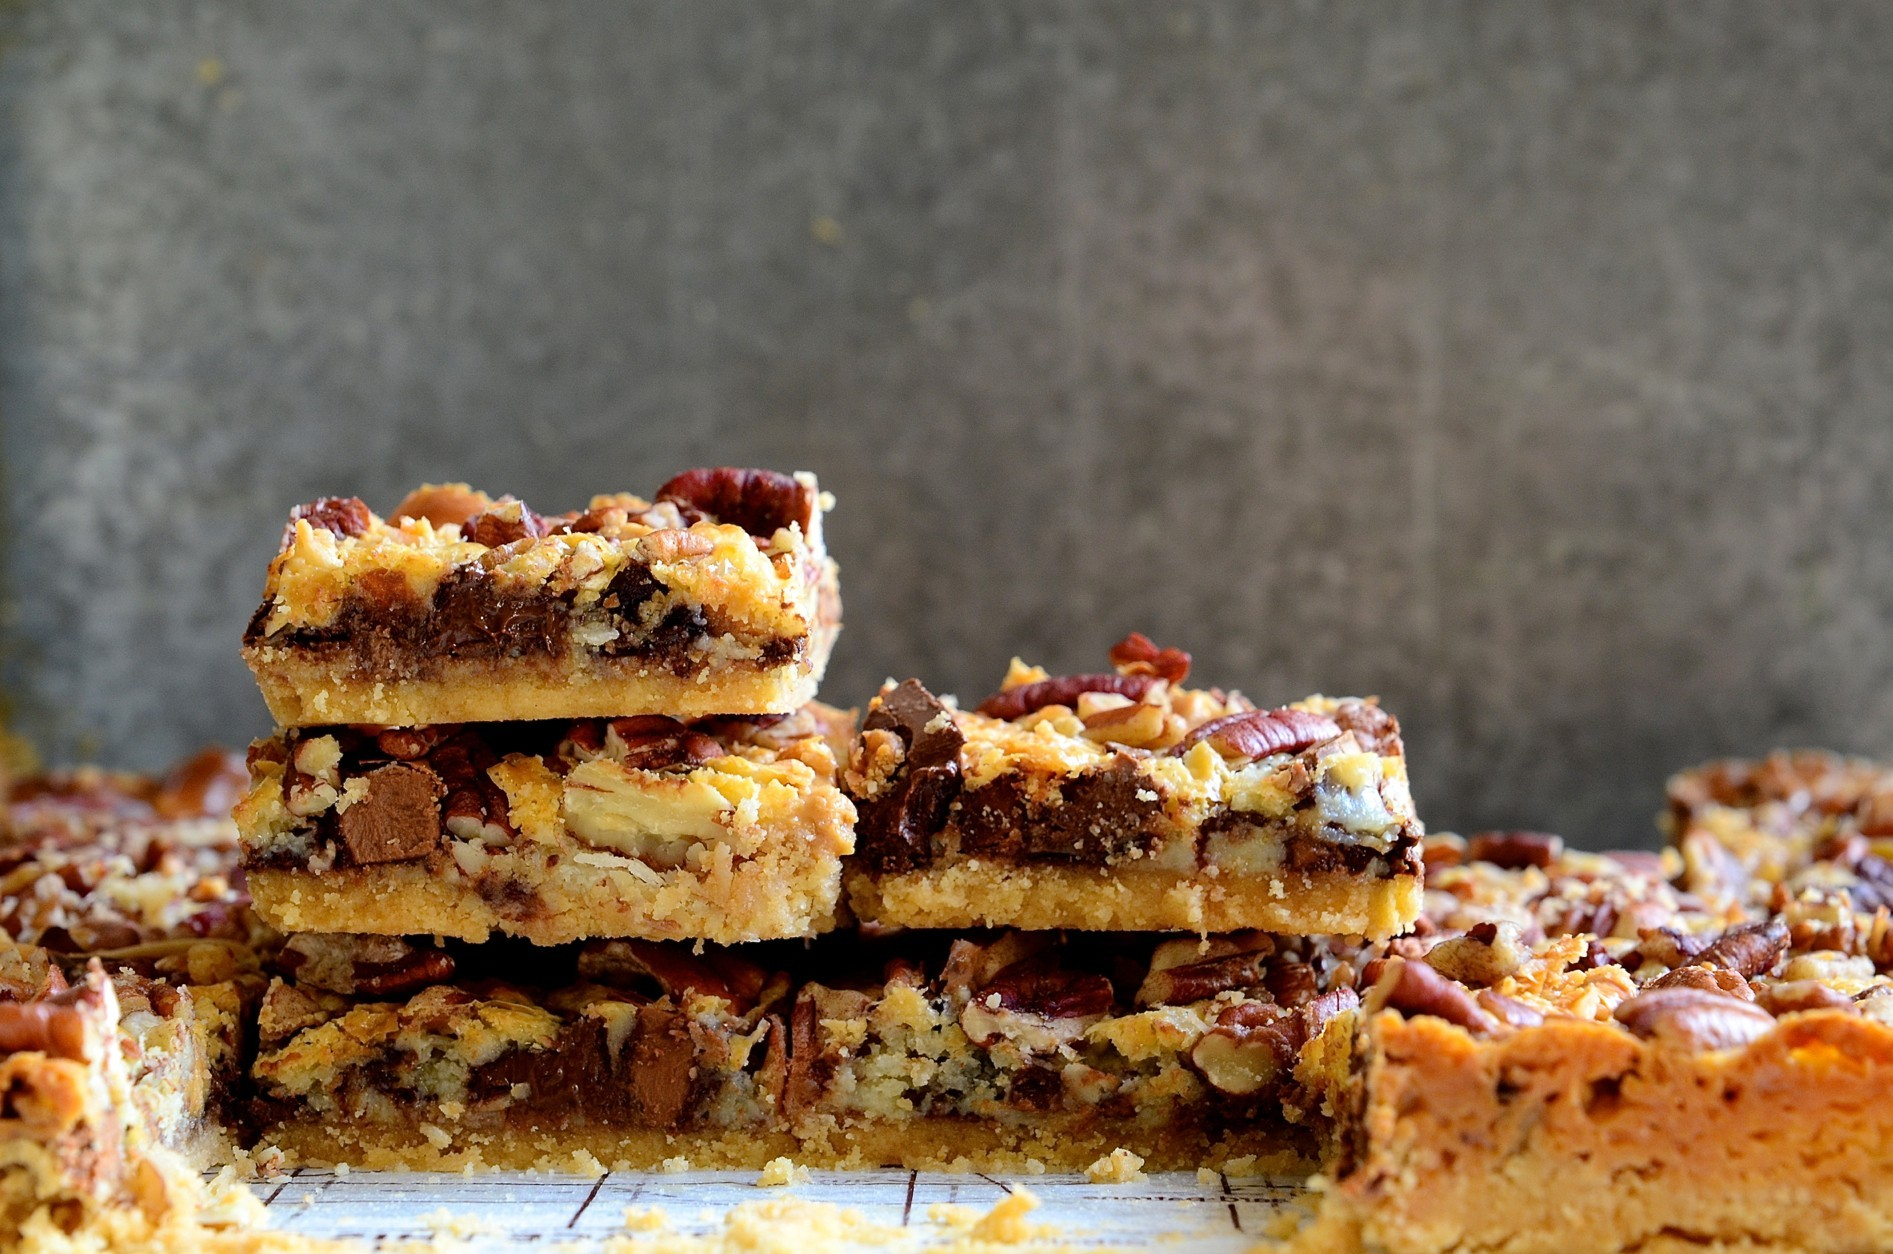 Peanut butter and caramel-toffee chocolate bars|baking recipes